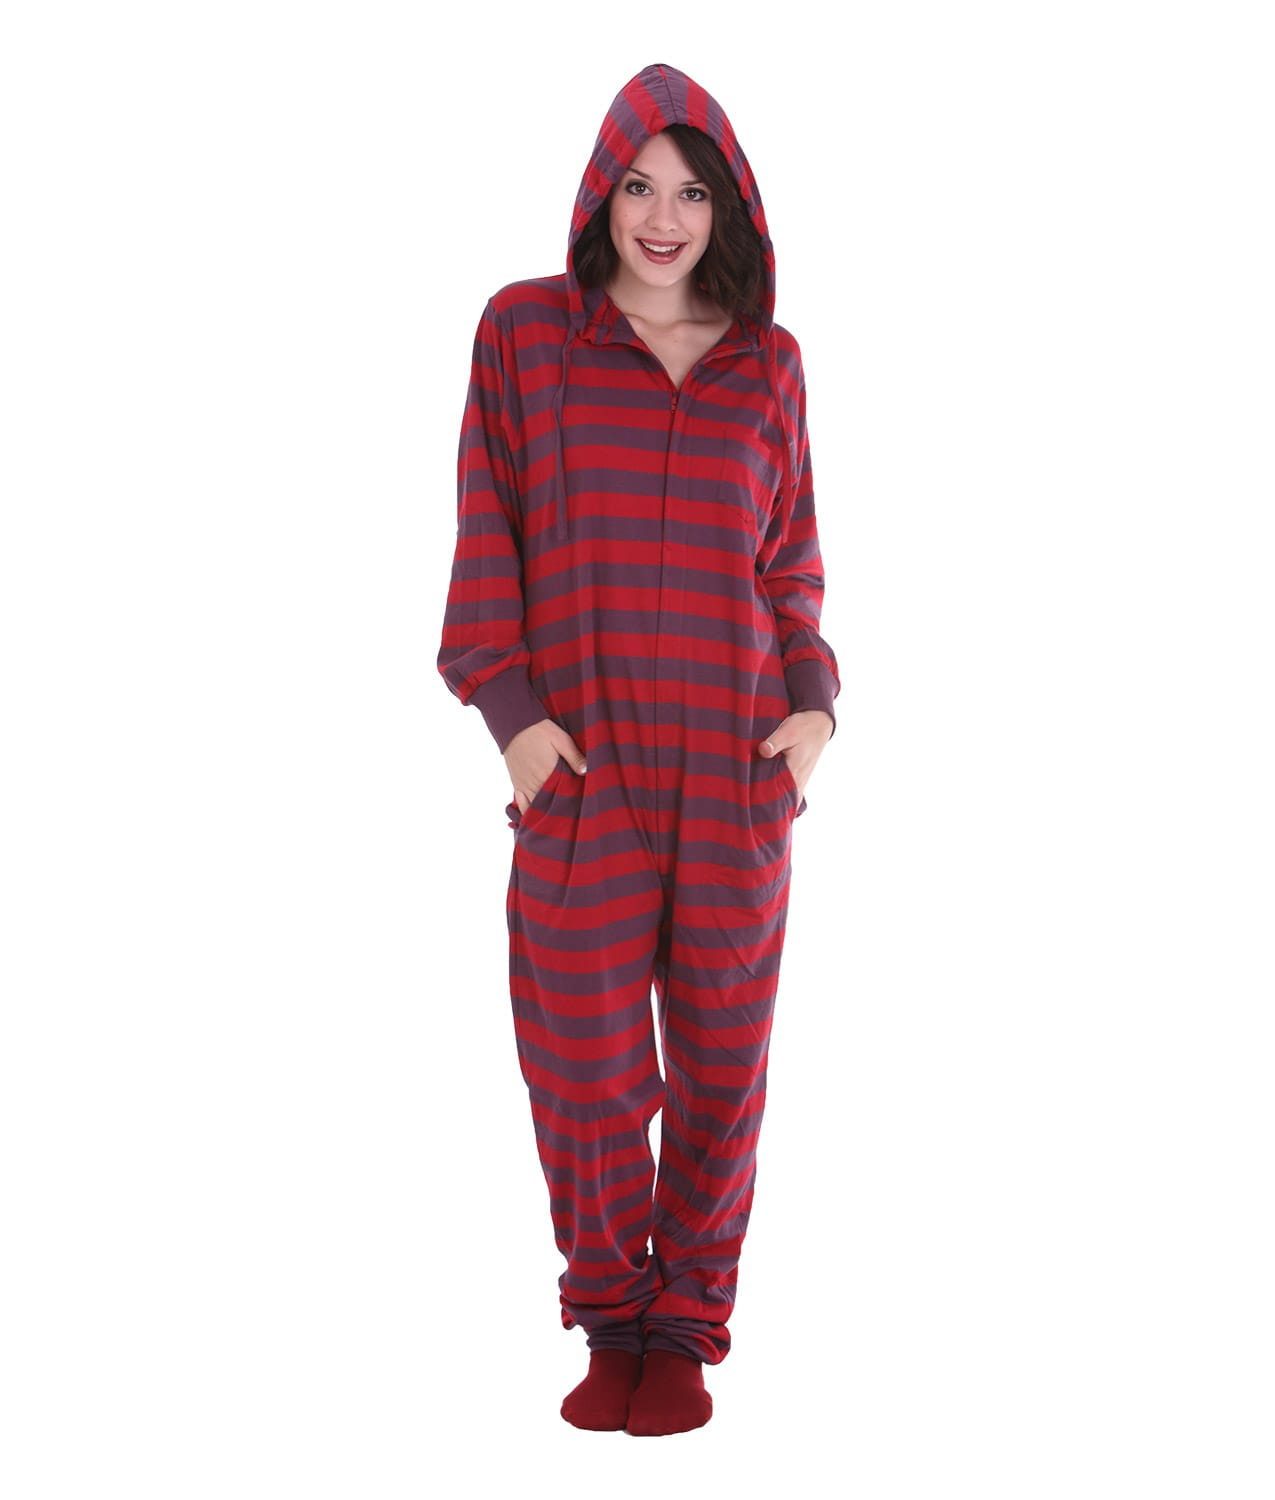 Shop for onsie sleepwear online at Target.5% Off W/ REDcard · Same Day Store Pick-Up · Free Shipping $35+ · Free ReturnsStyles: Jackets, Active wear, Maternity, Dresses, Jeans, Pants, Shirts, Shorts, Skirts.